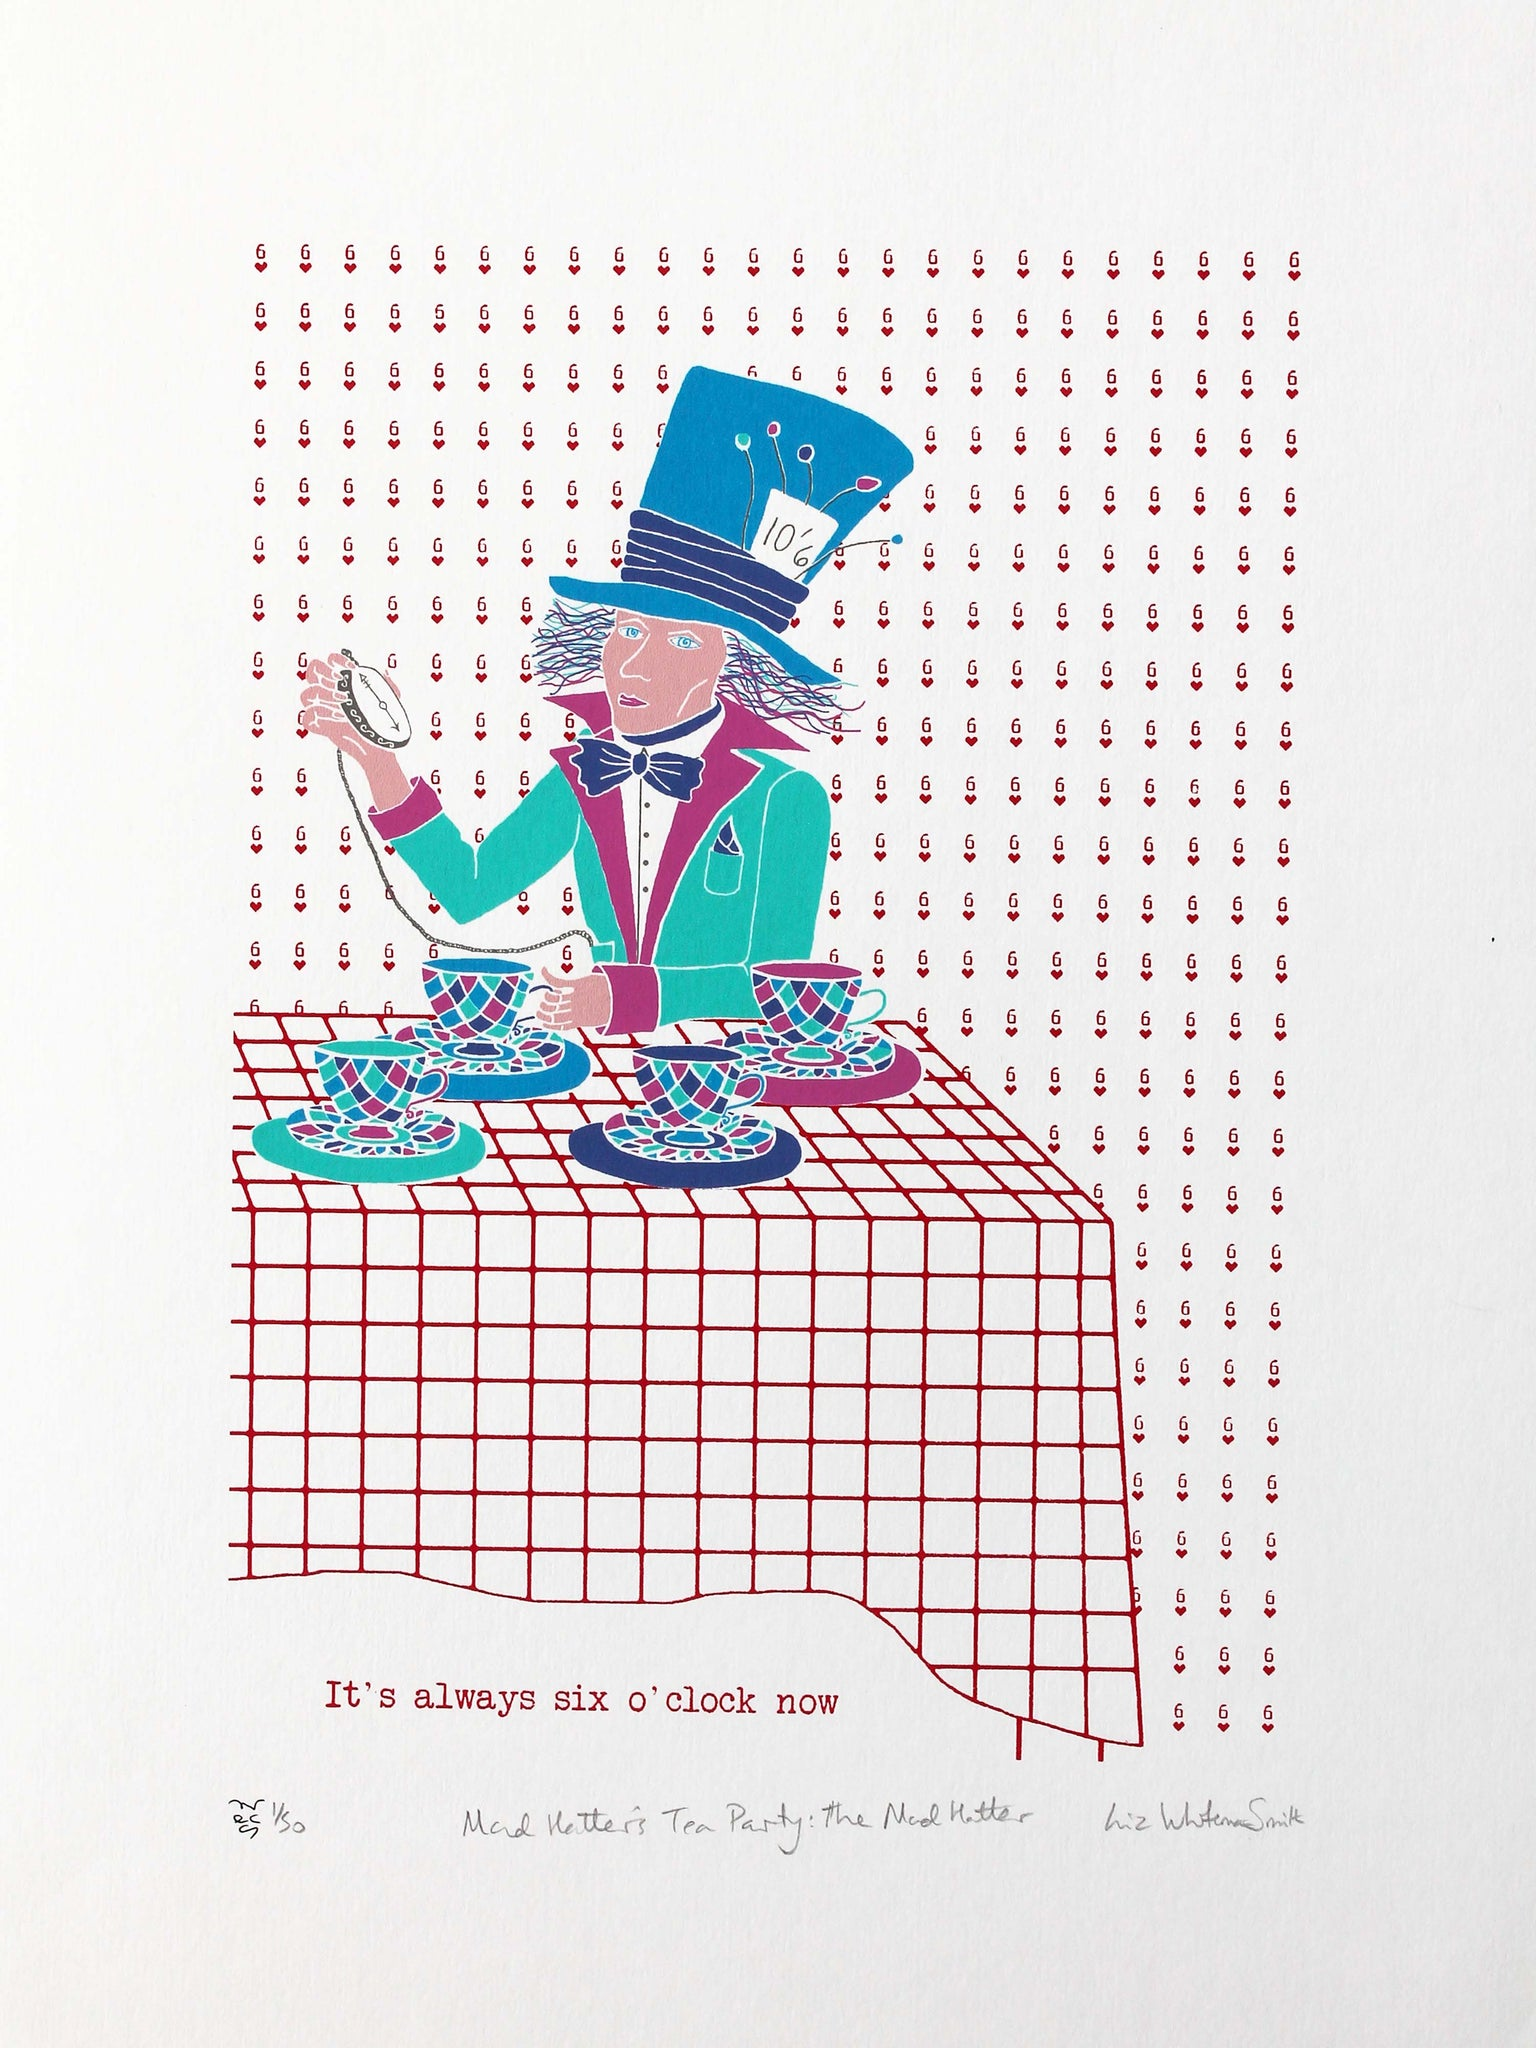 Mad Hatter's tea party: Mad Hatter